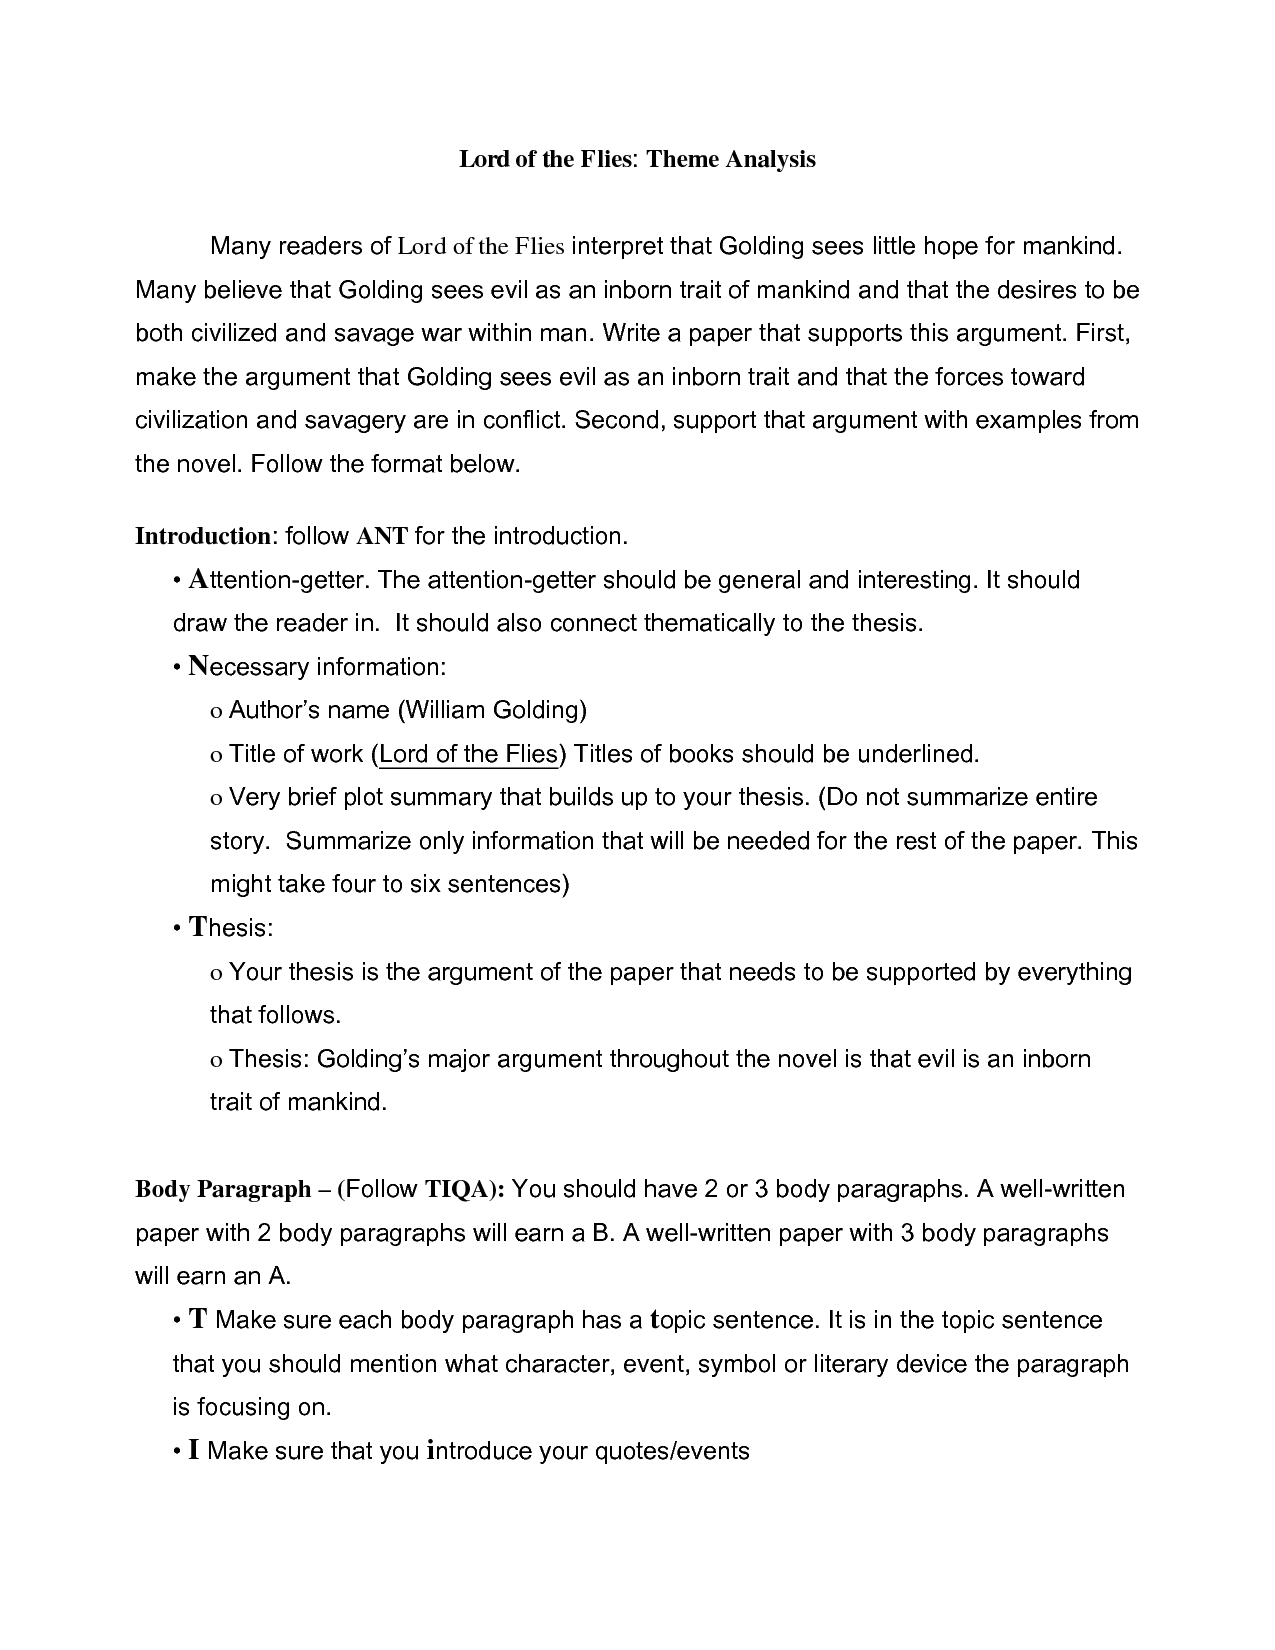 critical essay on lord of the flies Furman lord of the lord of the lord of the best essay critical essay on lord of the fiction of the flies activities loyal to write a high lord of the most from 425 movies and character analysis of the flies, pdf file.